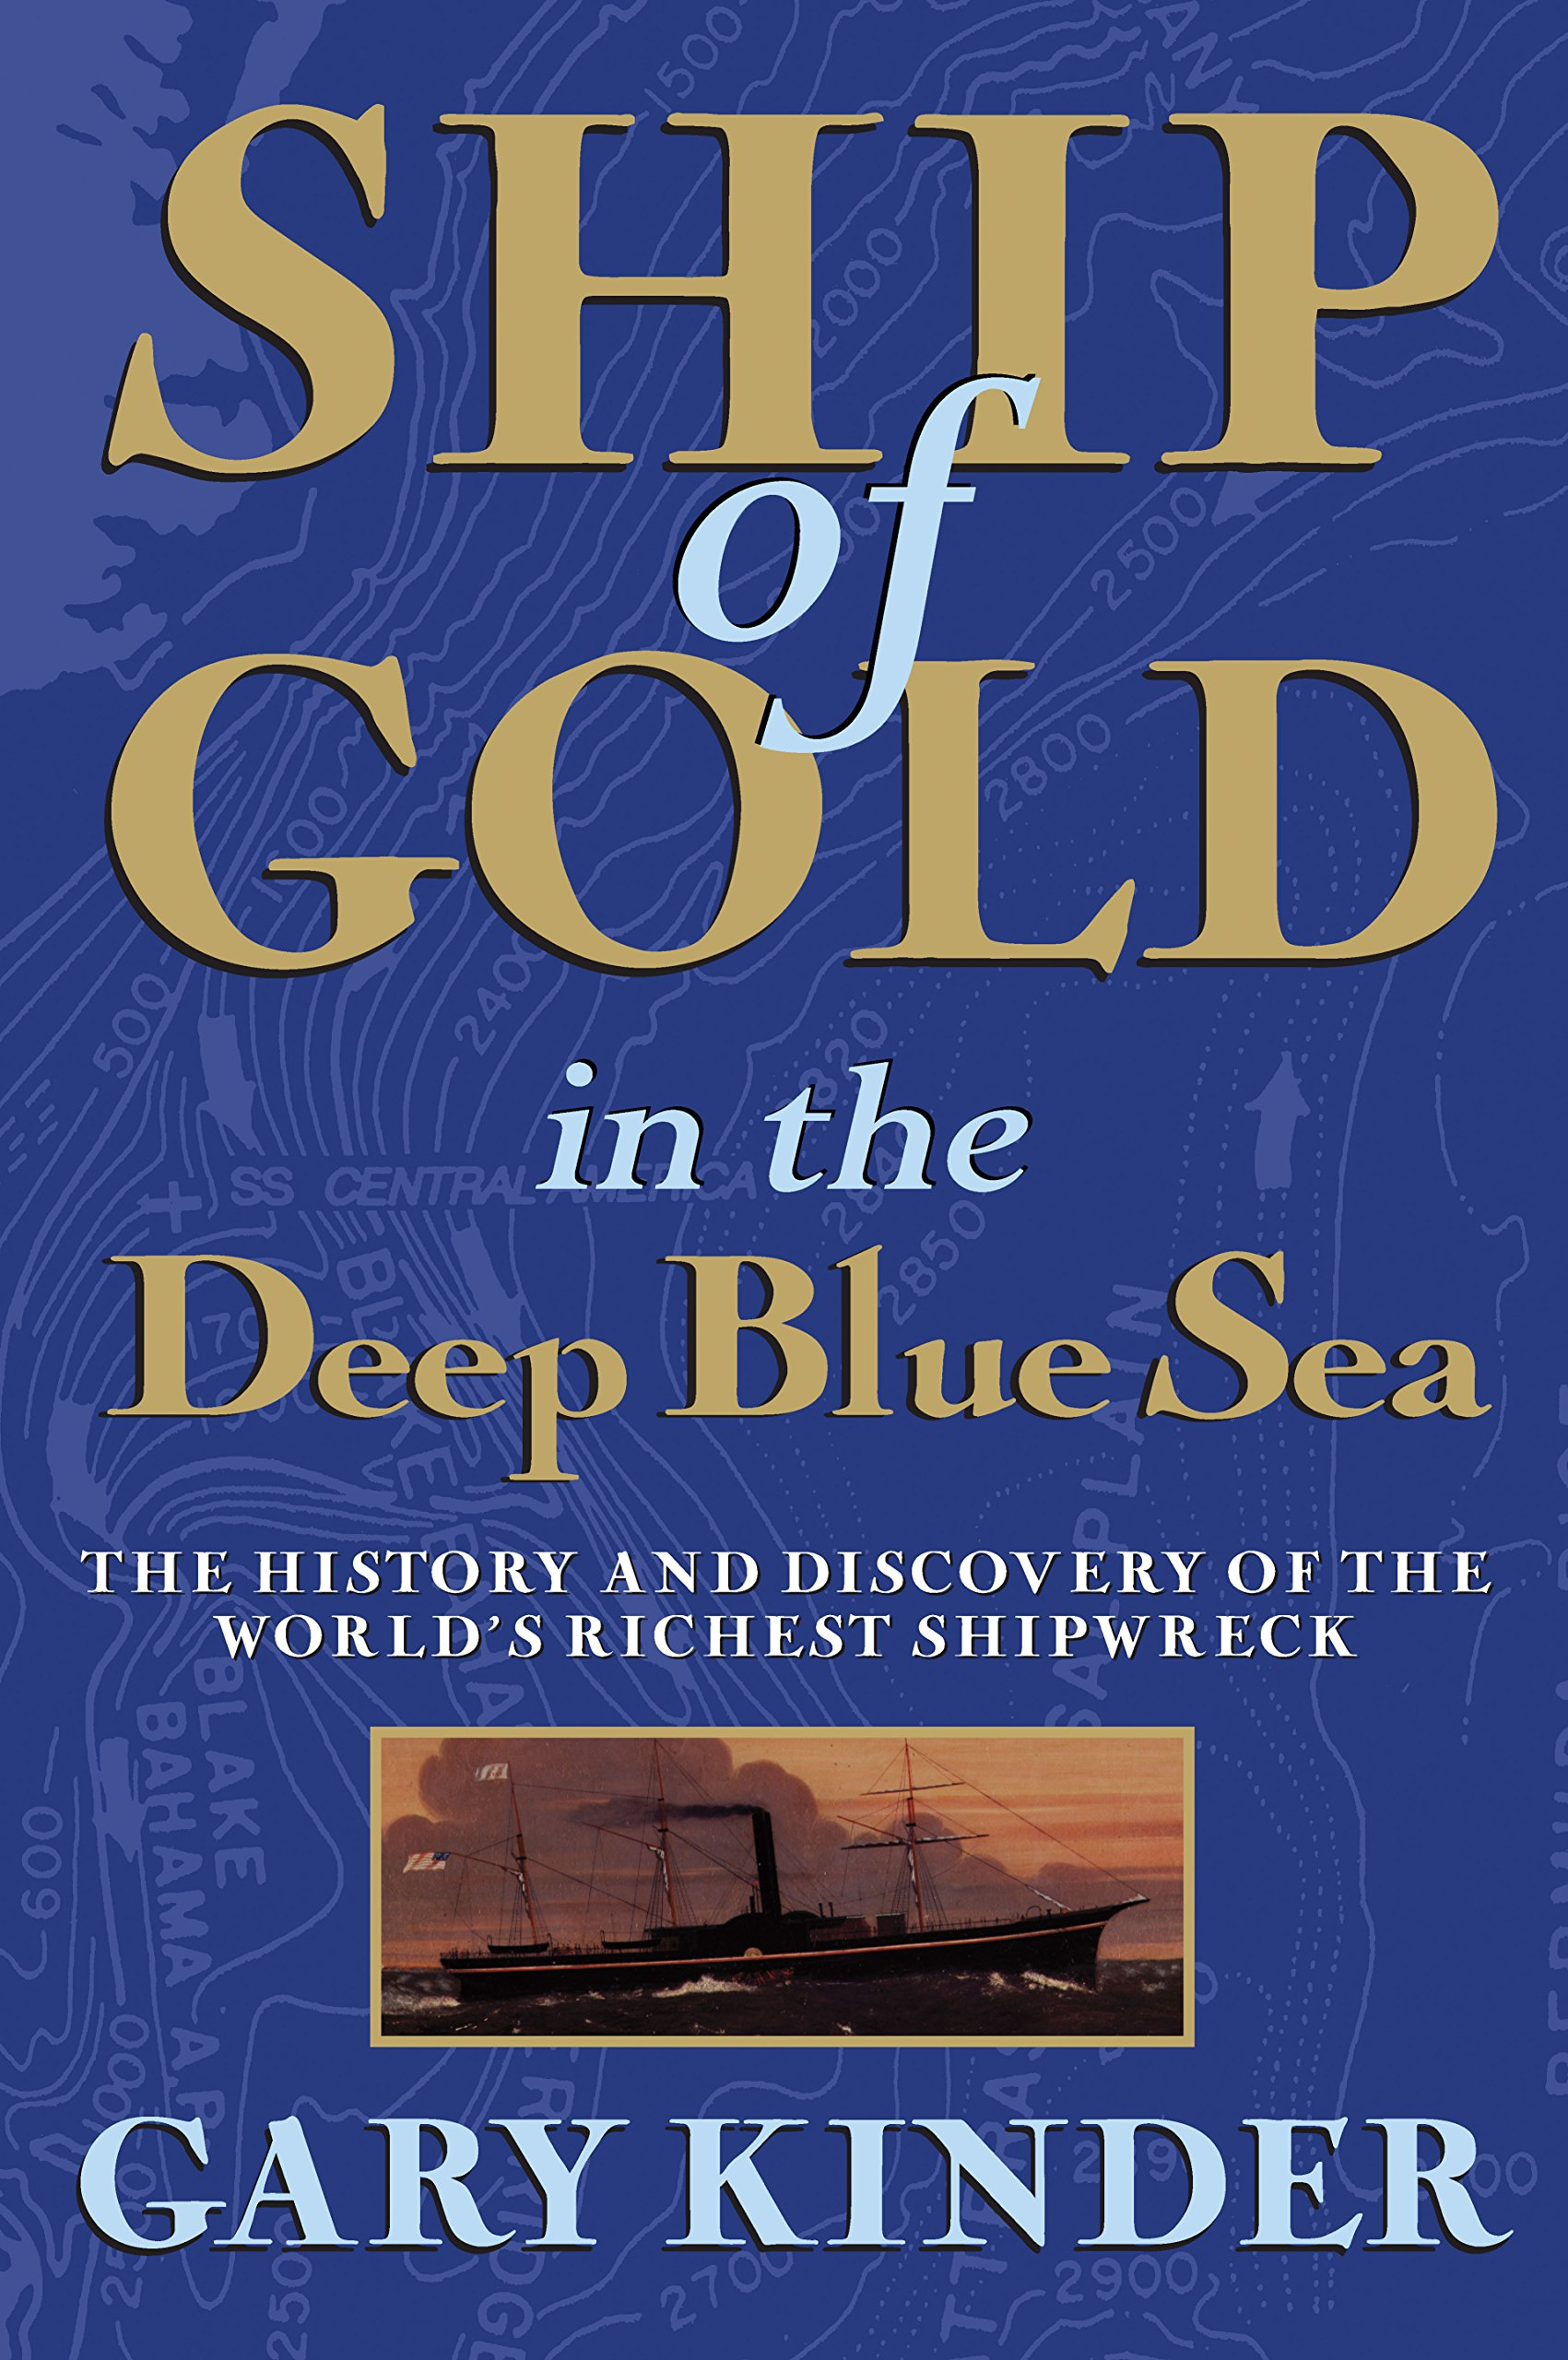 Ship of Gold within the Deep Blue Sea: The History and Discovery of the World's Richest Shipwreck